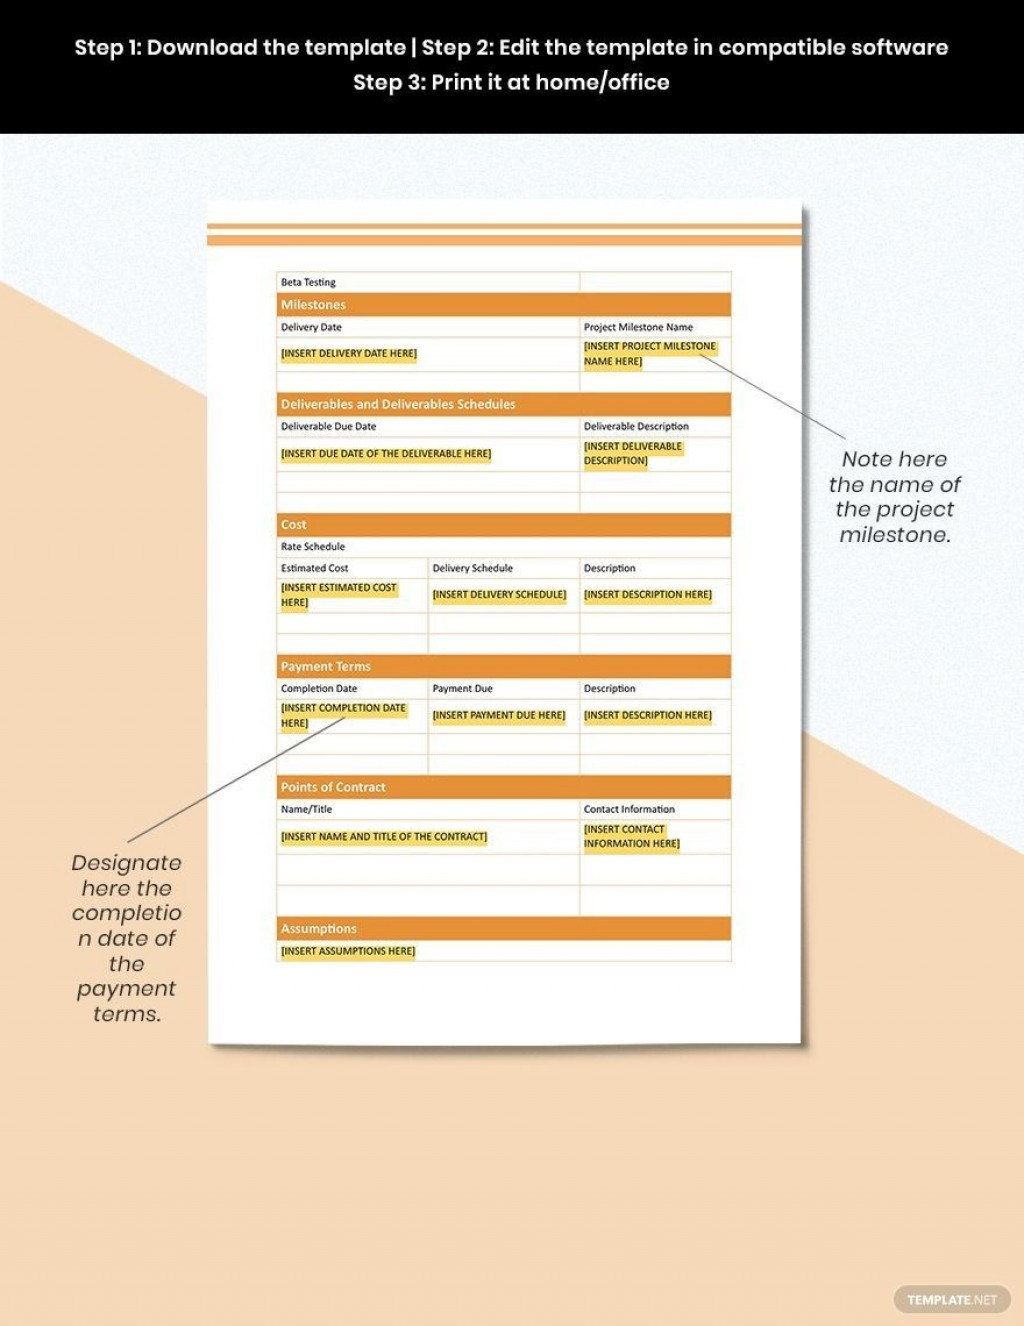 004 Awful Project Statement Of Work Template Doc Image Large